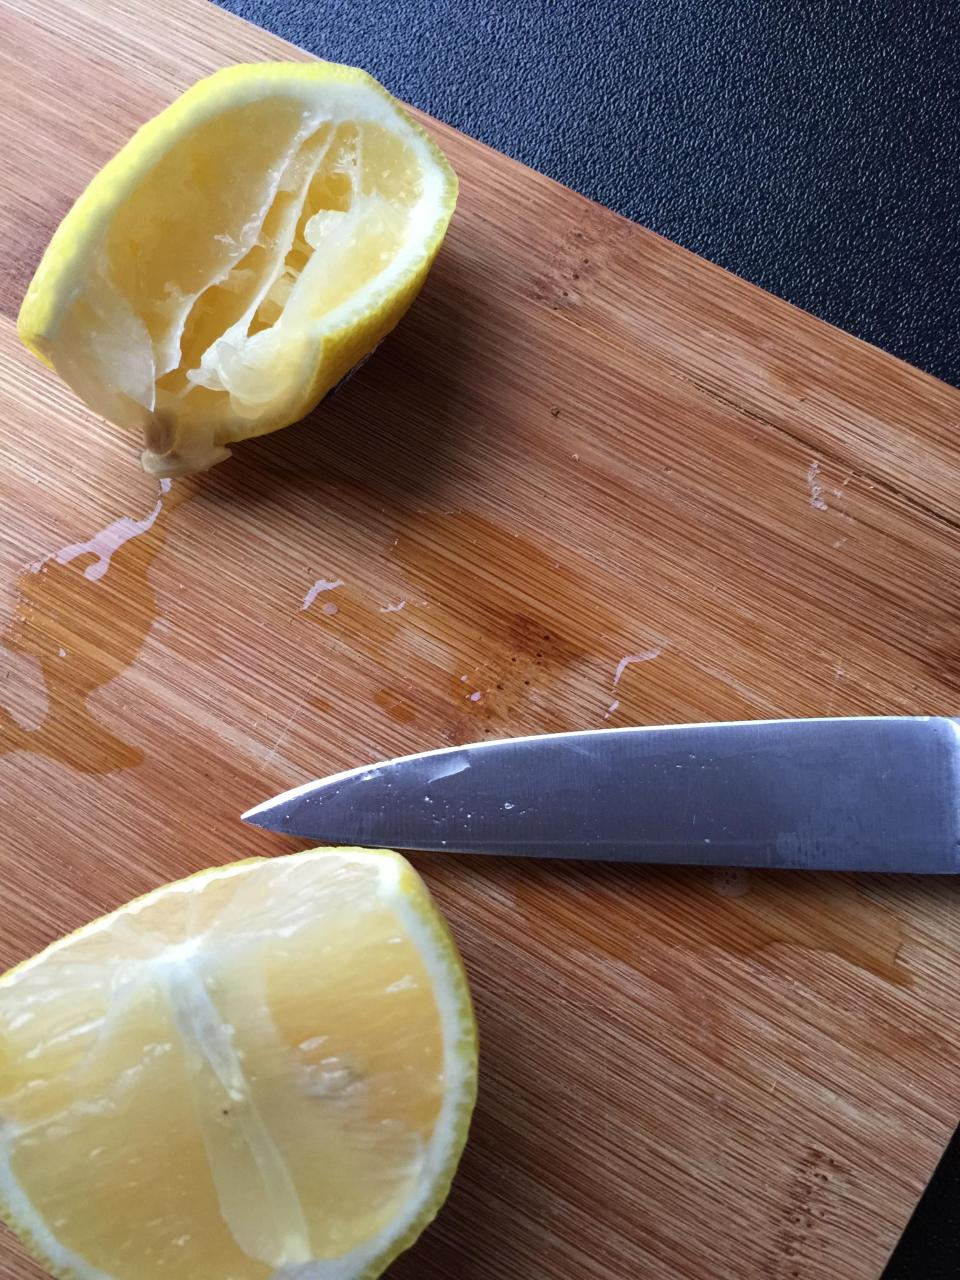 lemons fruits knife